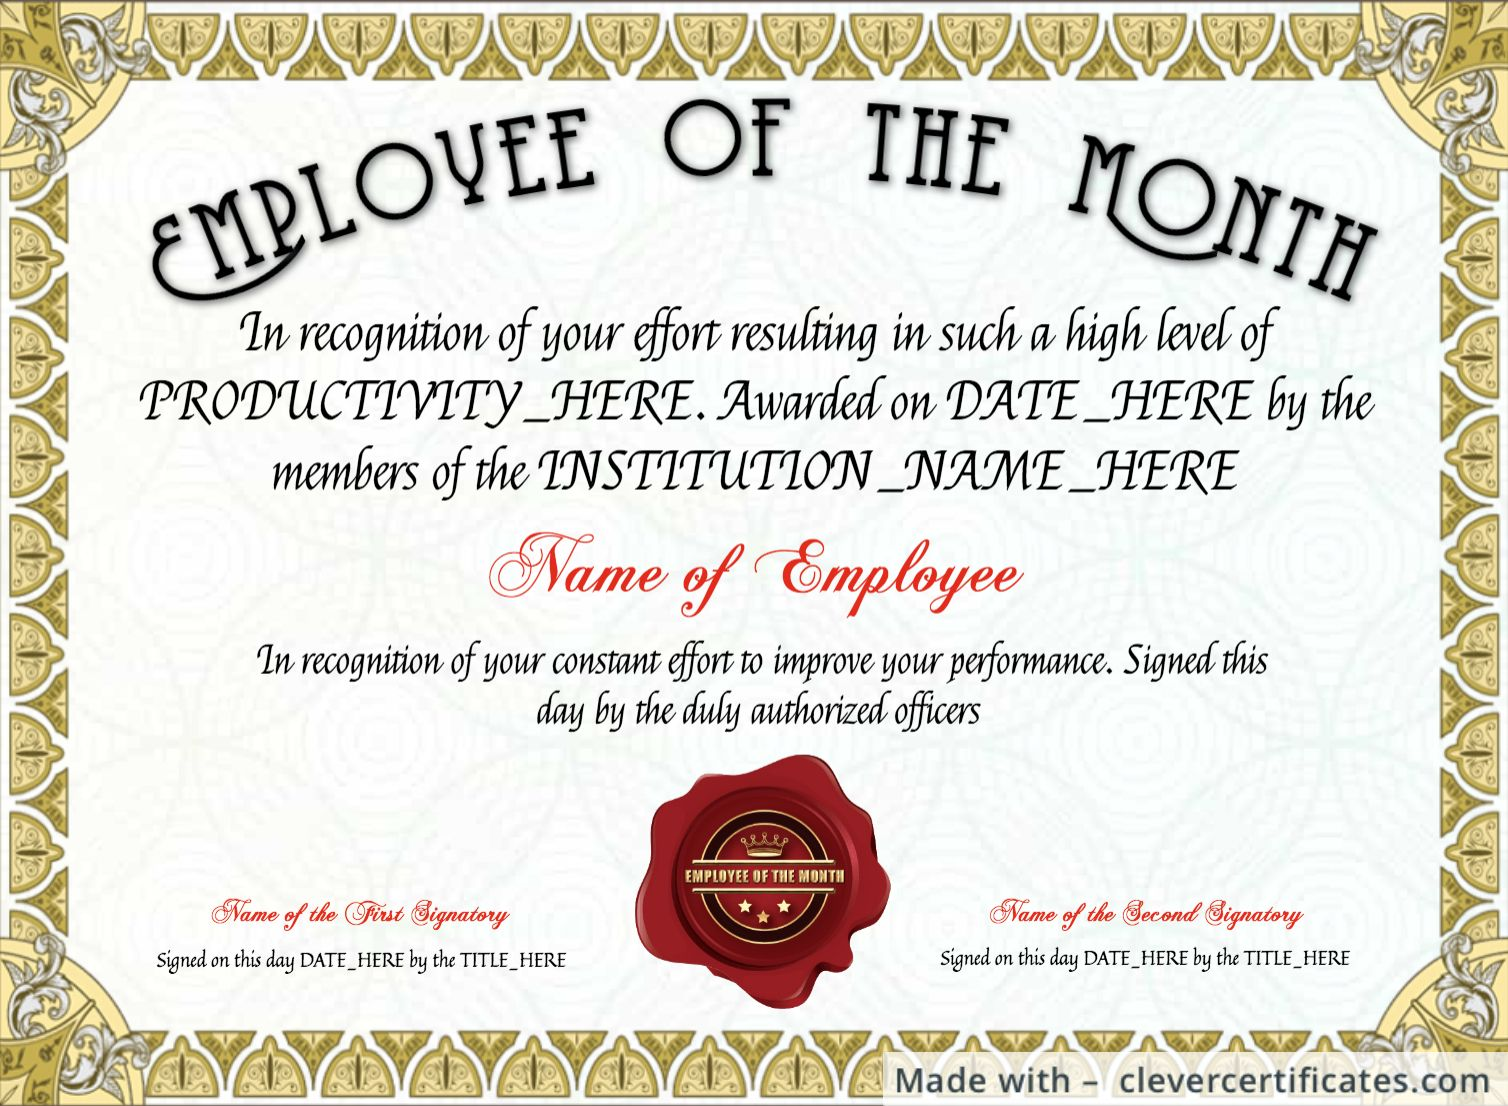 The Amazing Free Employee Of The Month Certificate Template At Regarding Employee Of The Mon Certificate Templates Employee Awards Employee Awards Certificates Printable employee of the month certificate